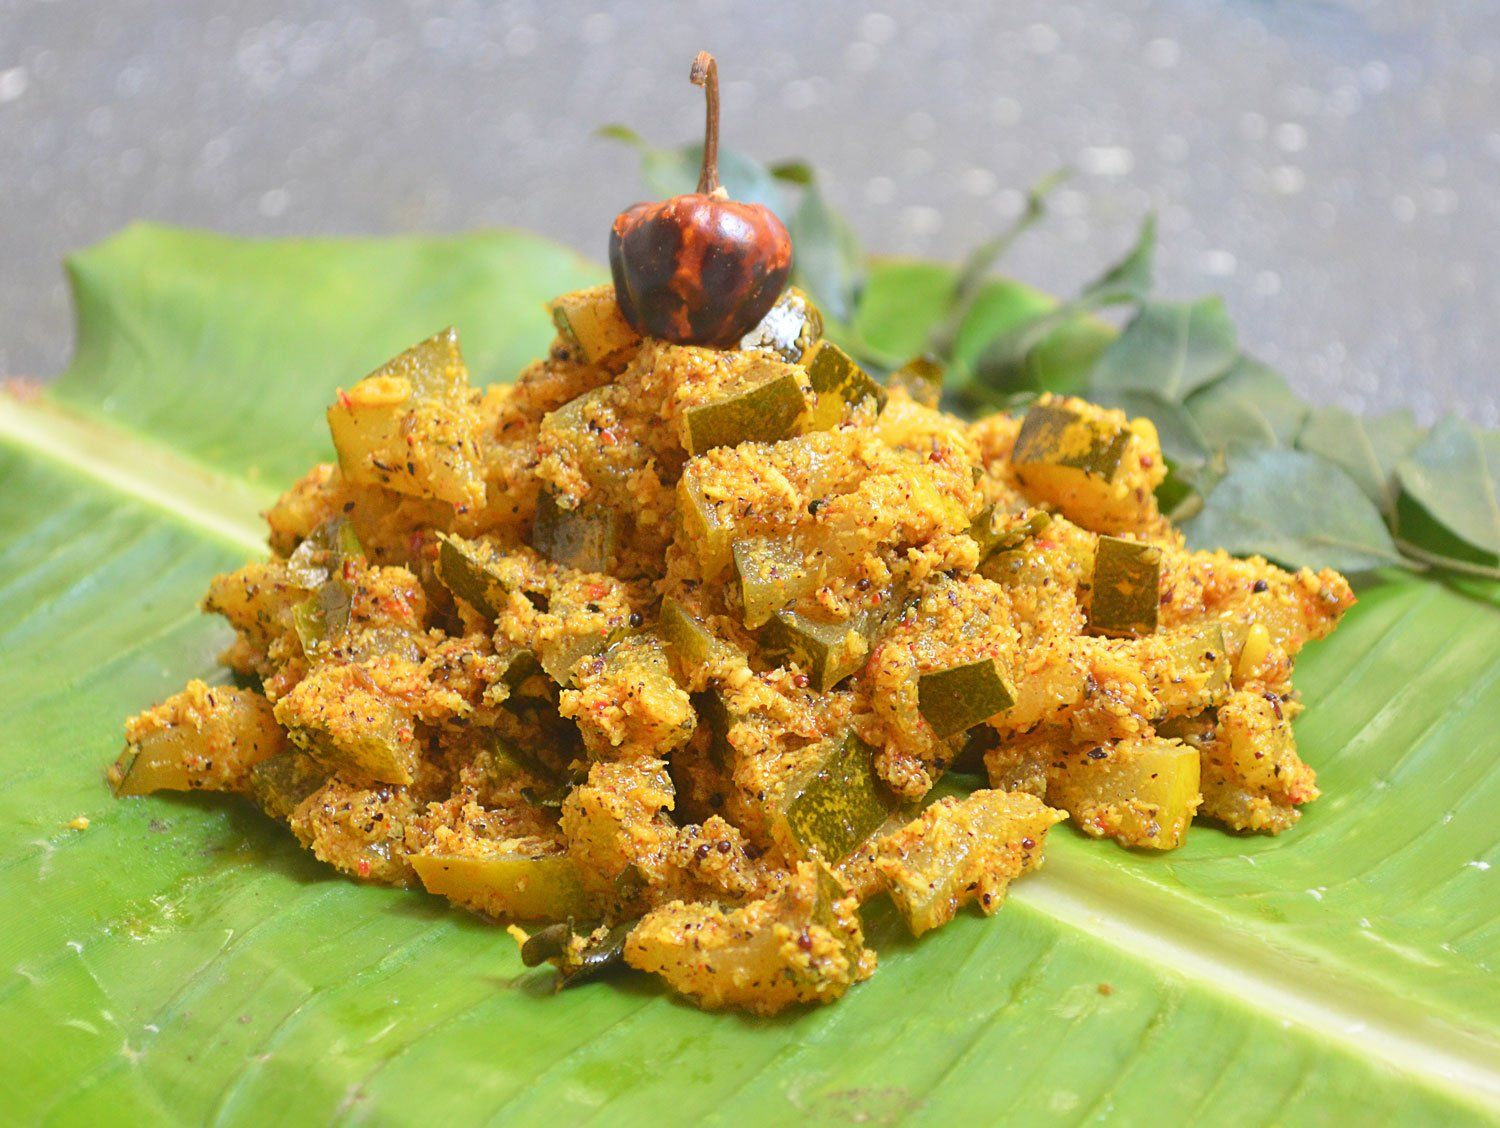 Coorg Style Bollari Barthad Or Mangalore Cucumber Stir Fry - Best Coorgi Dishes To Try When In Coorg